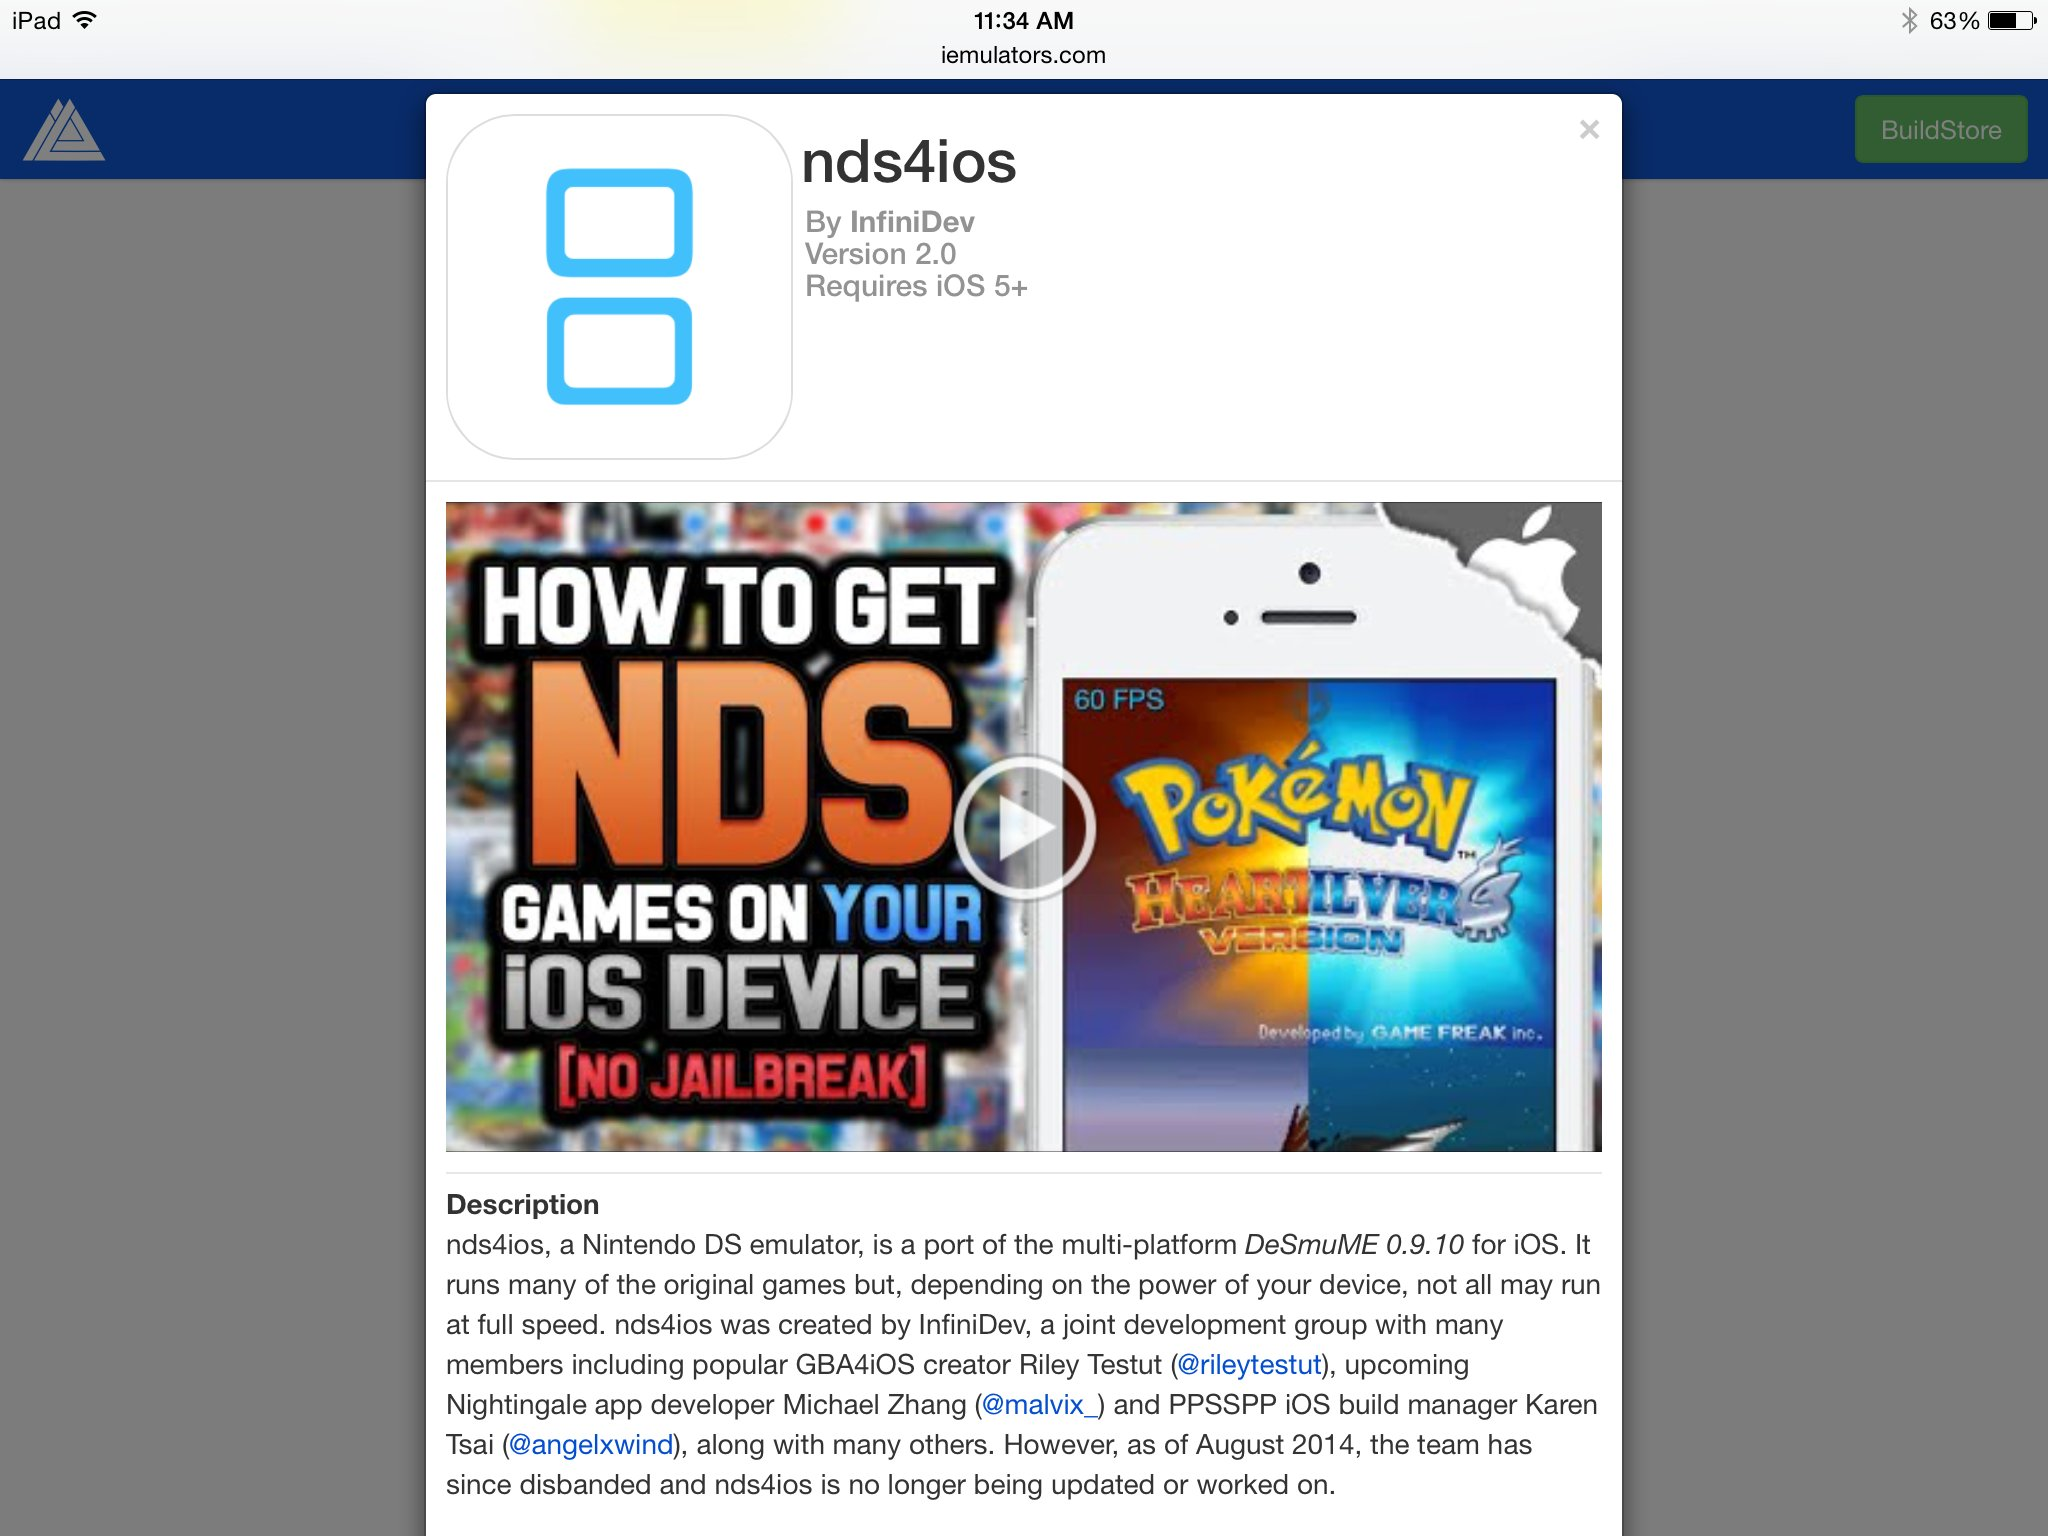 You Can Install Nintendo DS Emulator 'nds4ios' Right Now